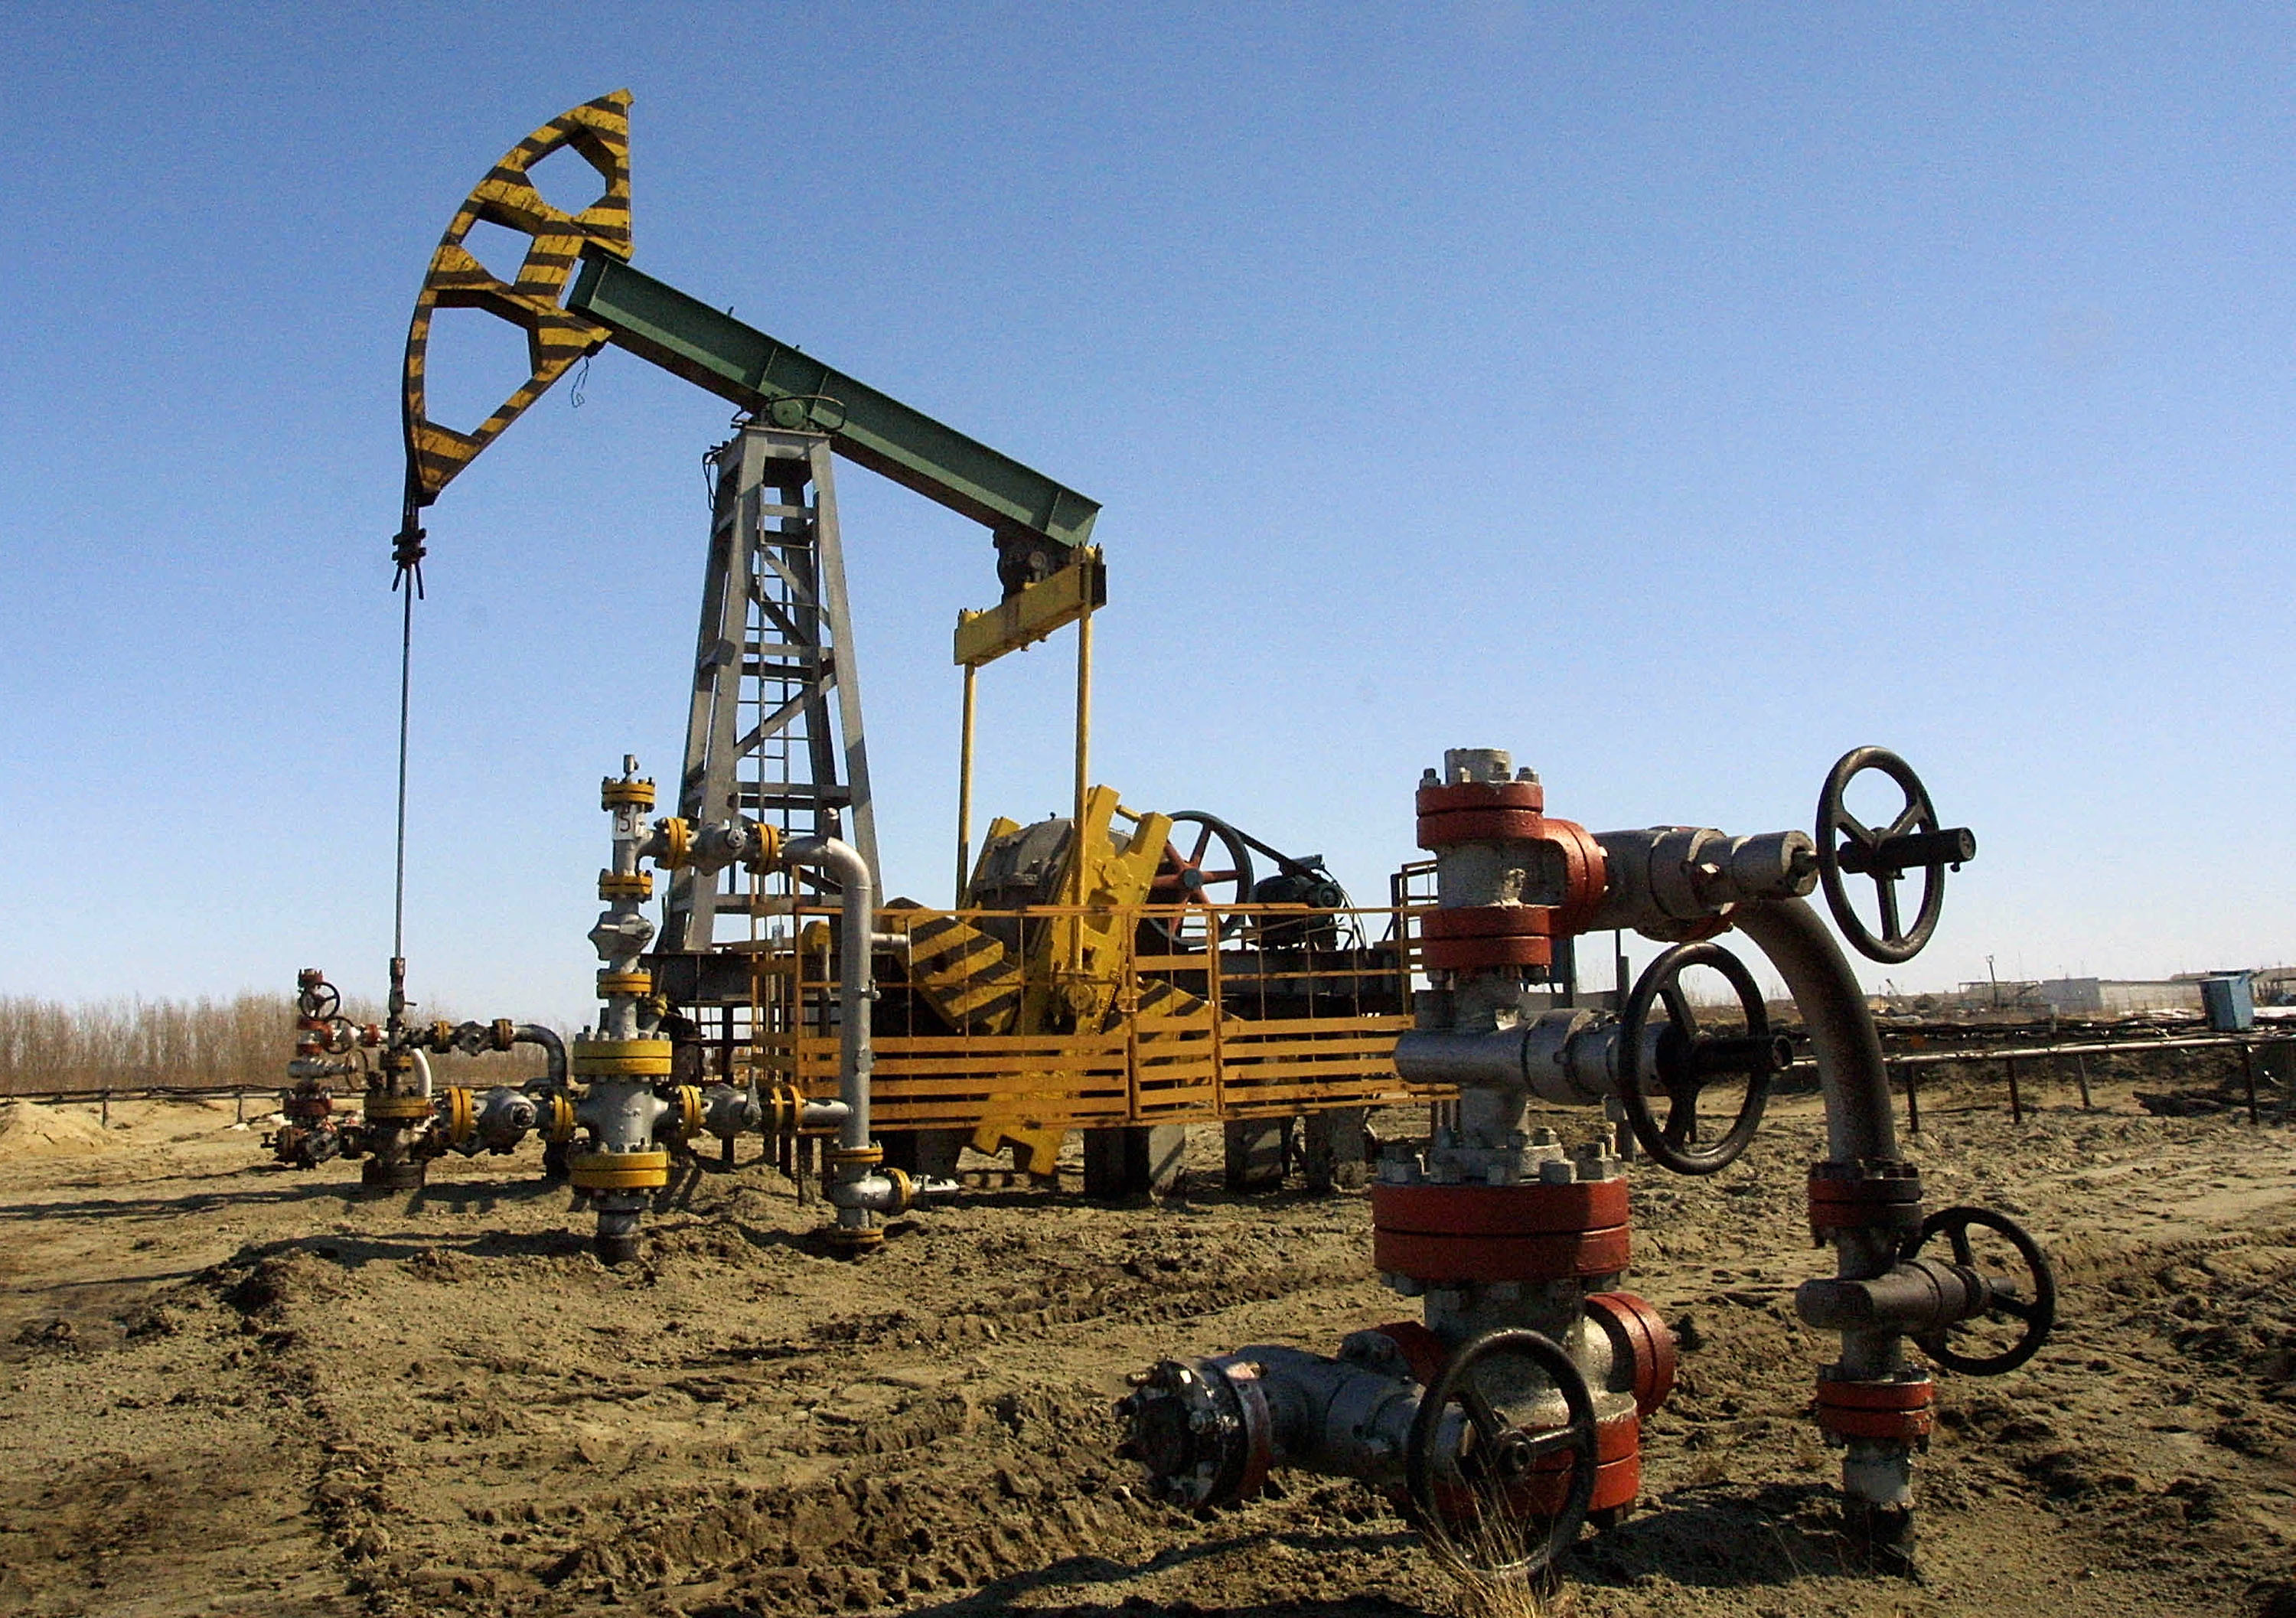 A Russian oil well.